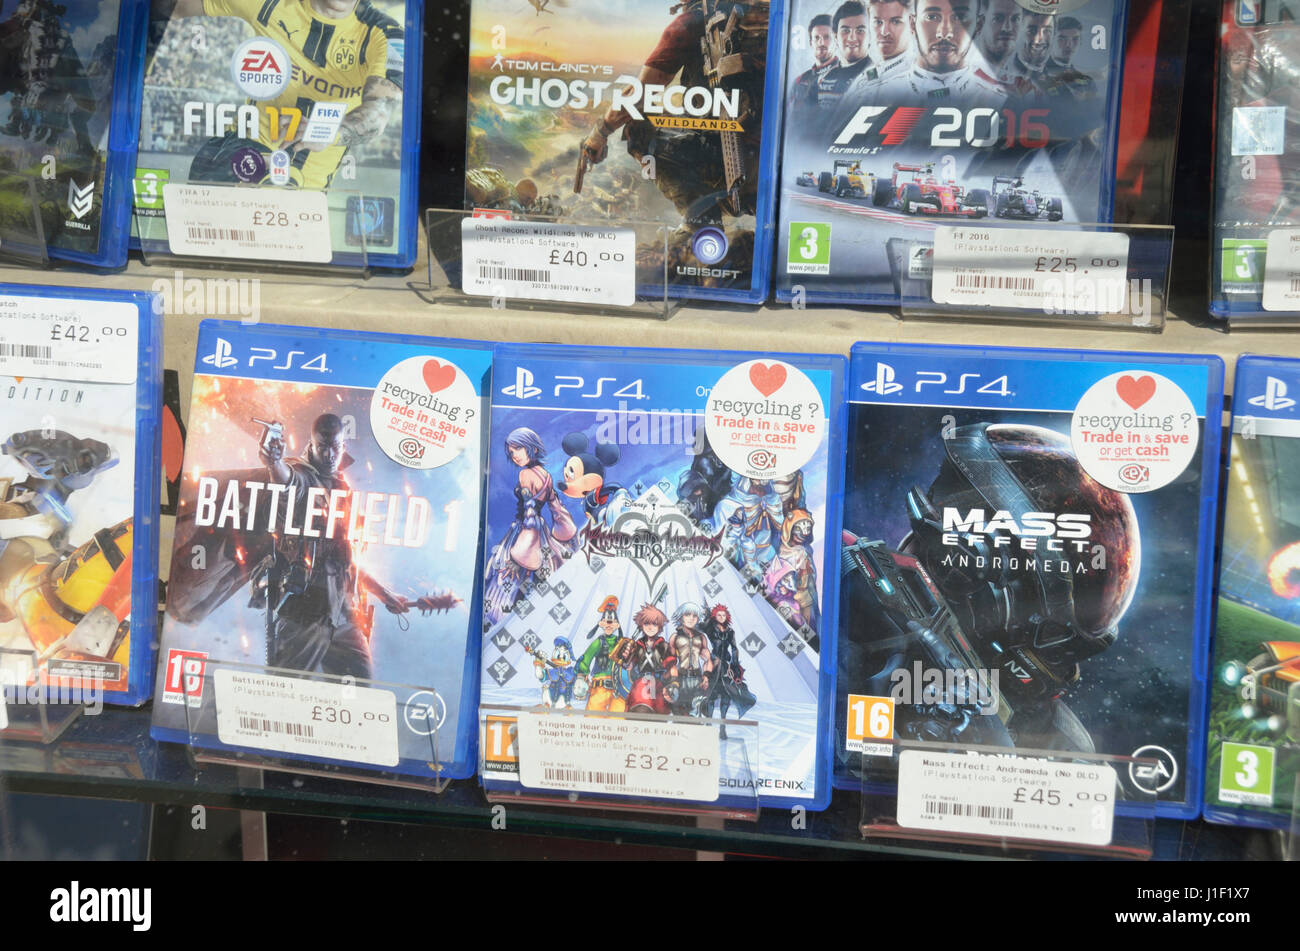 PS4 PlayStation video games on display in a shop window Stock Photo